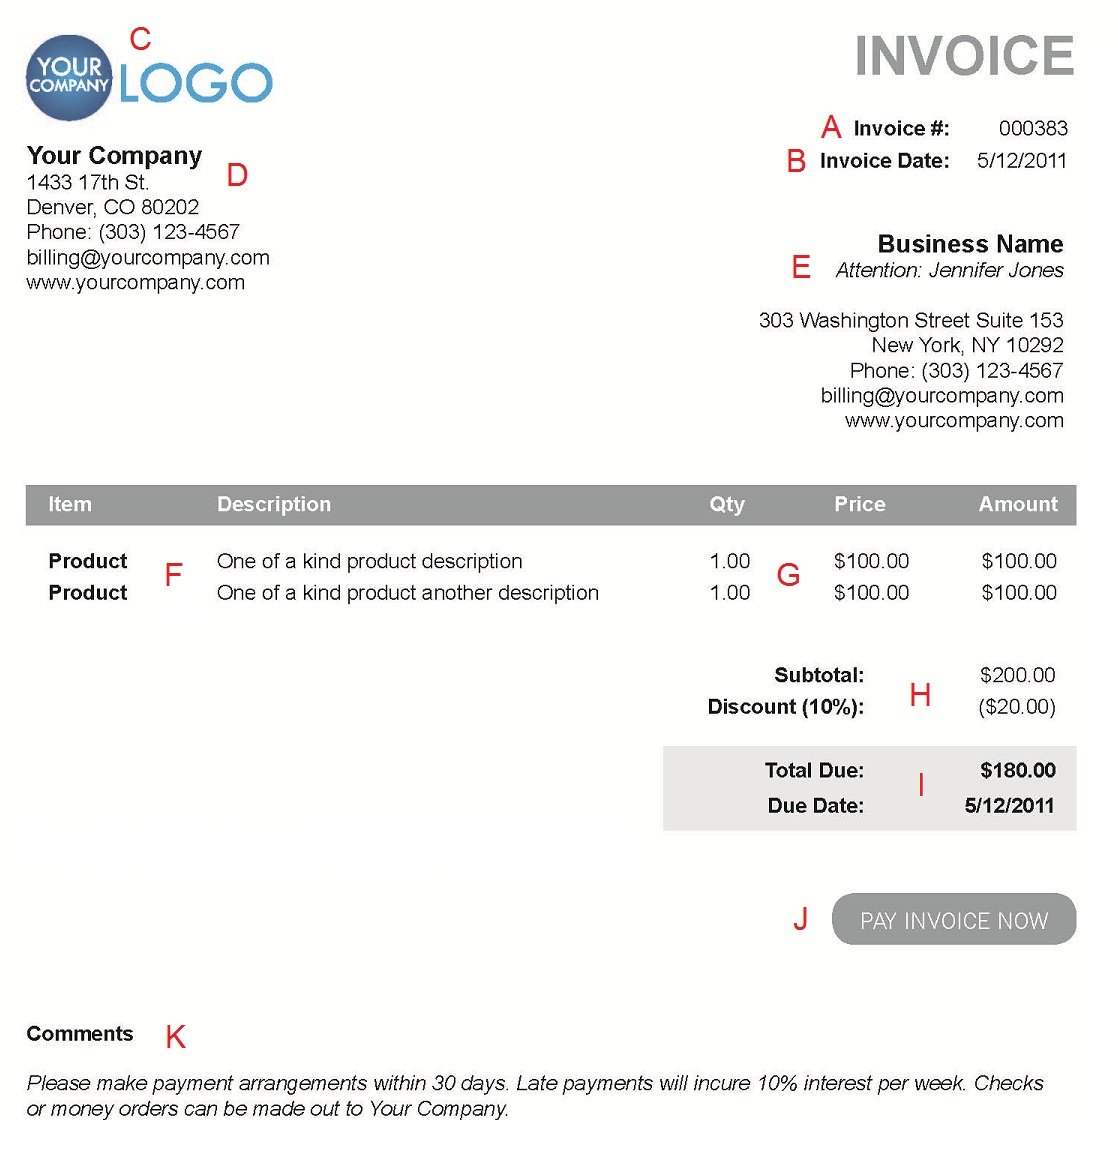 Coolmathgamesus  Winning The  Different Sections Of An Electronic Payment Invoice With Handsome A  With Extraordinary Invoice Hours Also Sales Invoice Terms And Conditions In Addition Free Invoice Billing Software And Invoice Template Maker As Well As Open Source Invoice Management Additionally Tax Invoice Without Abn From Paysimplecom With Coolmathgamesus  Handsome The  Different Sections Of An Electronic Payment Invoice With Extraordinary A  And Winning Invoice Hours Also Sales Invoice Terms And Conditions In Addition Free Invoice Billing Software From Paysimplecom